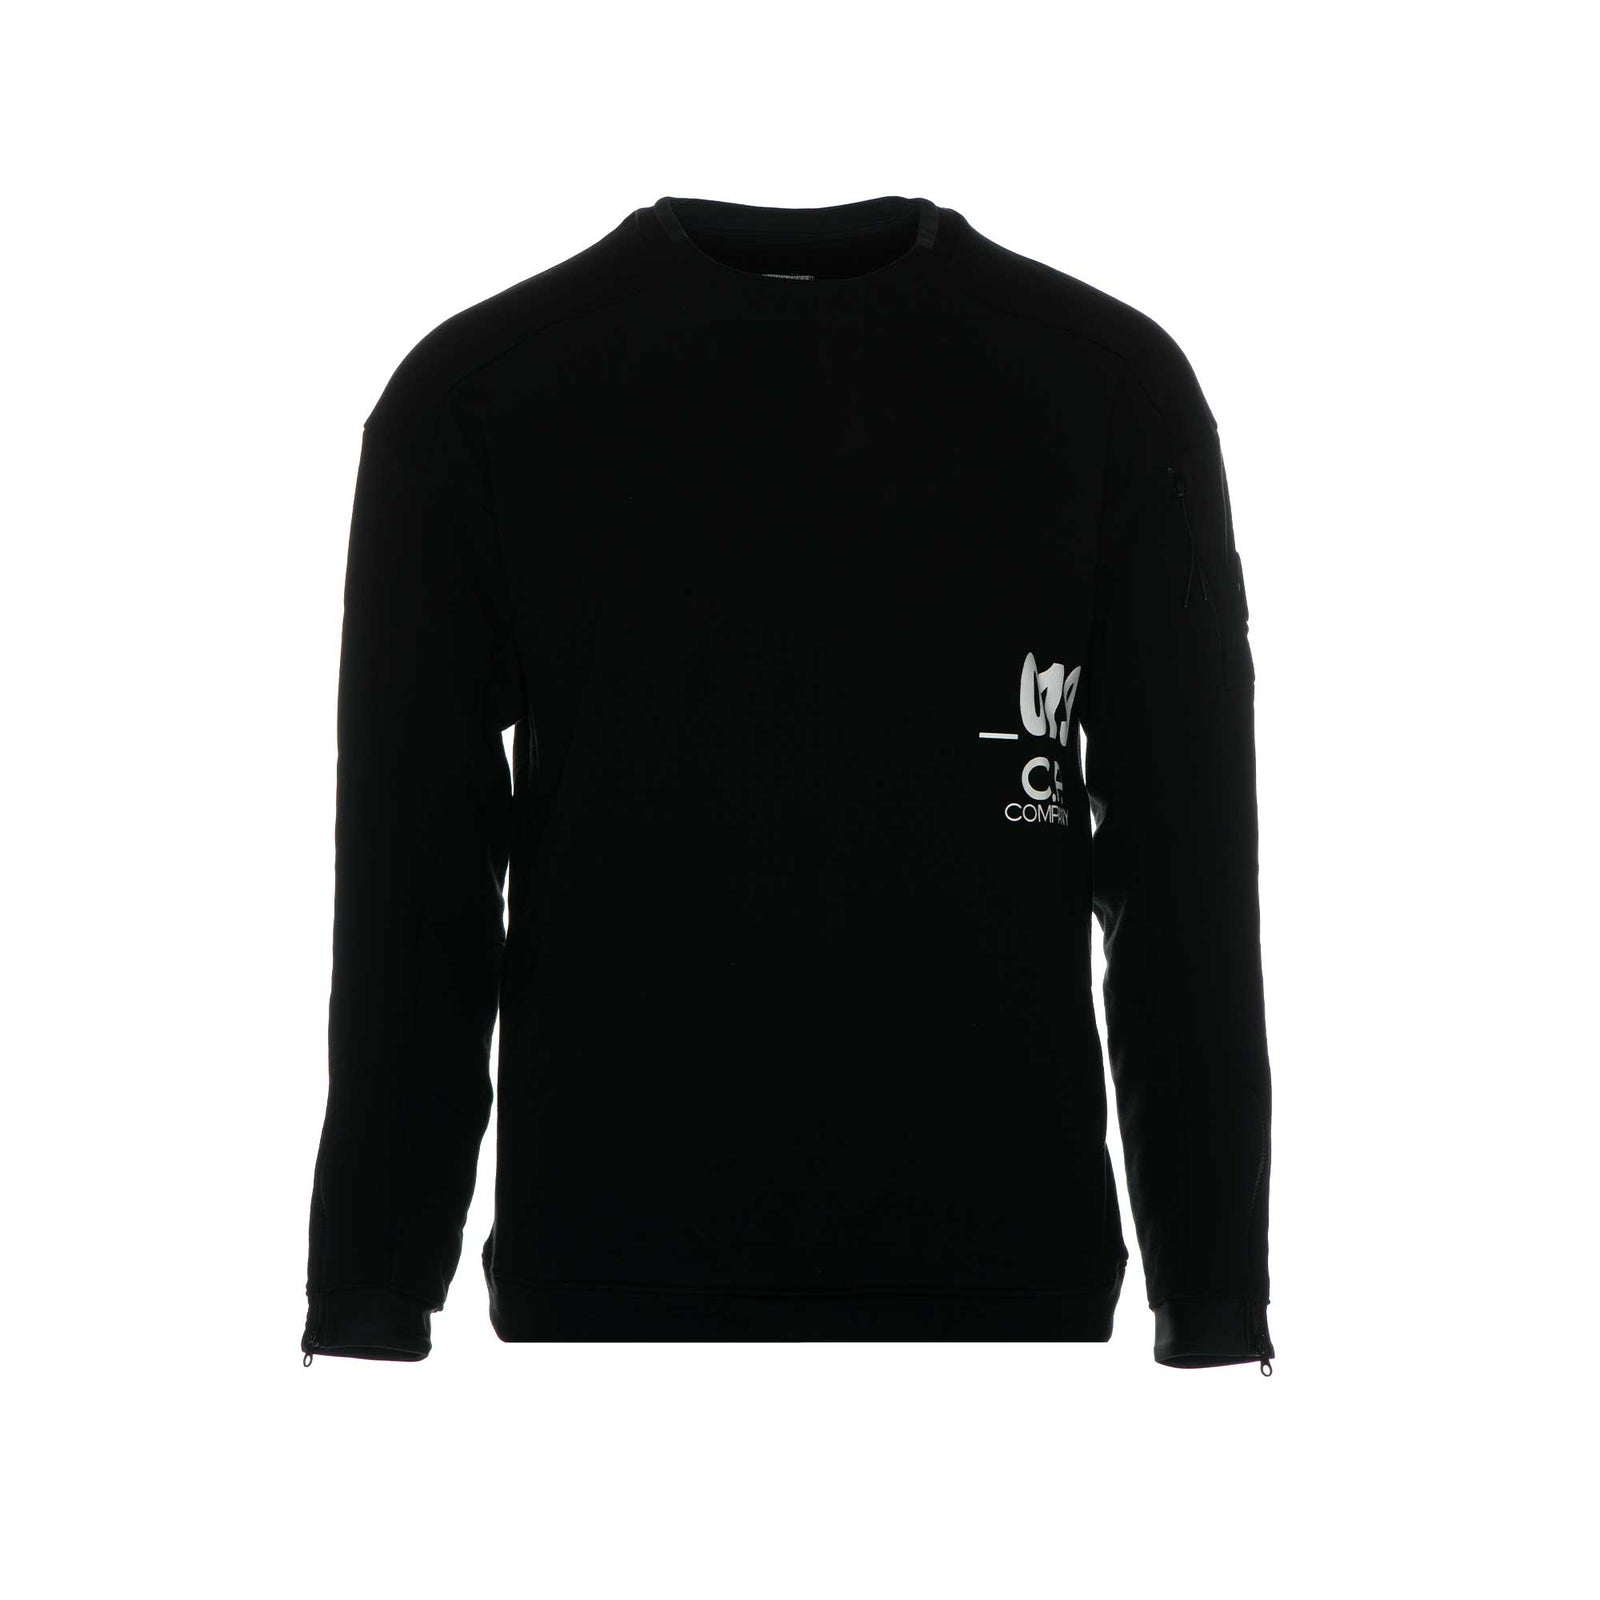 C.P. Company Diagonal Fleece Lens Crew Sweatshirt in Black